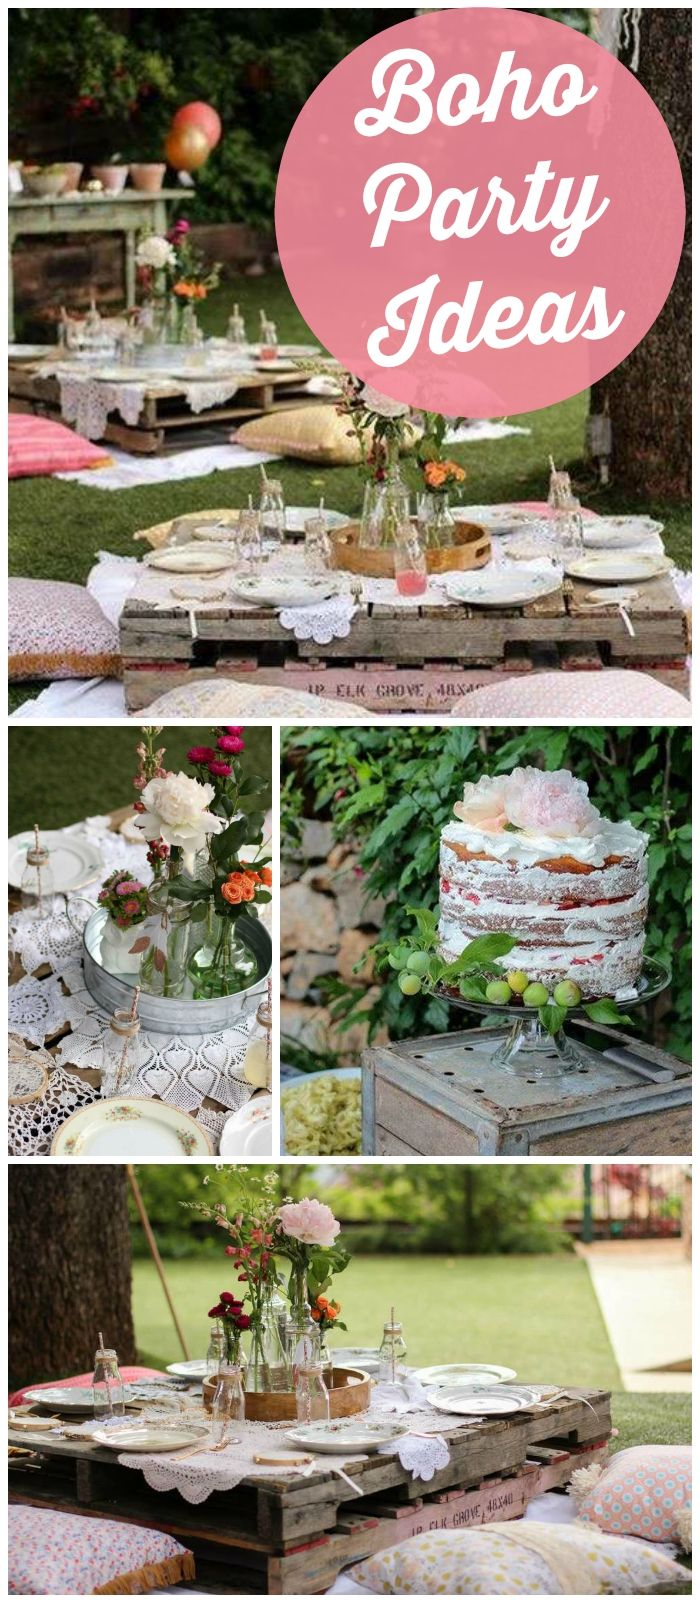 best images about picnic party picnics country boho garden party birthday charlotte s 7th boho party